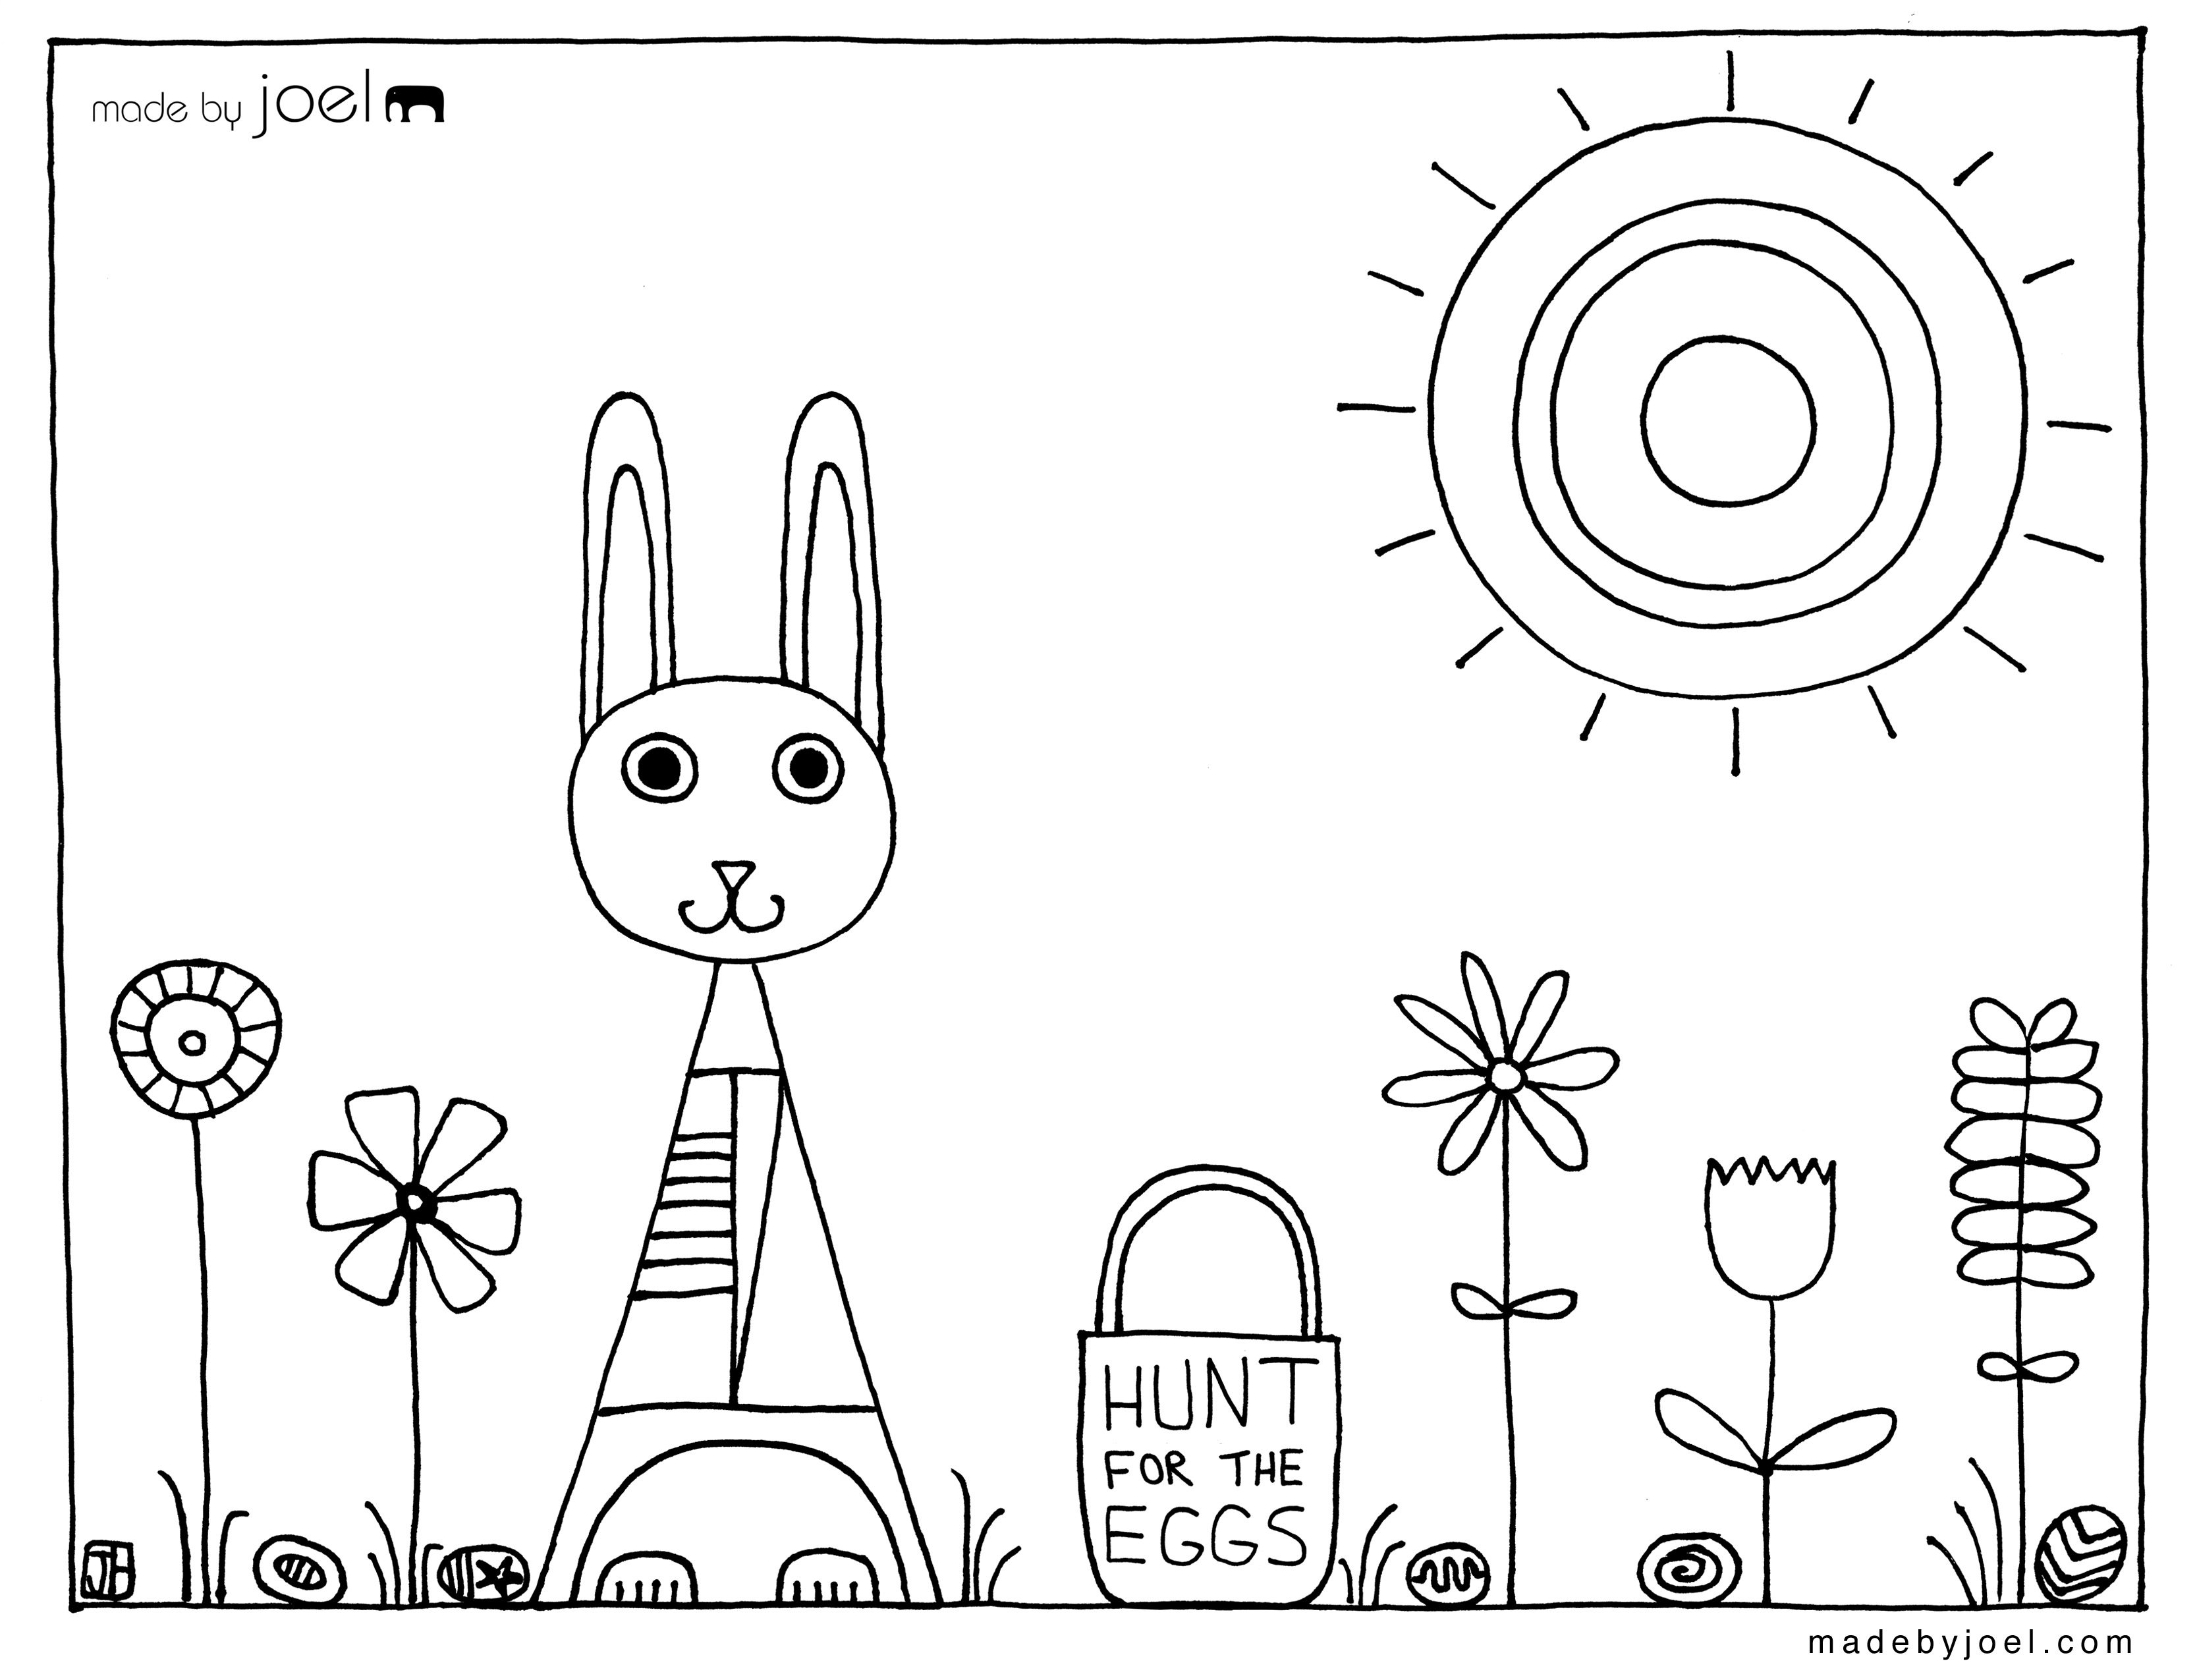 Christmas Coloring Pages For 4 Year Olds With Made By Joel Free Sheets